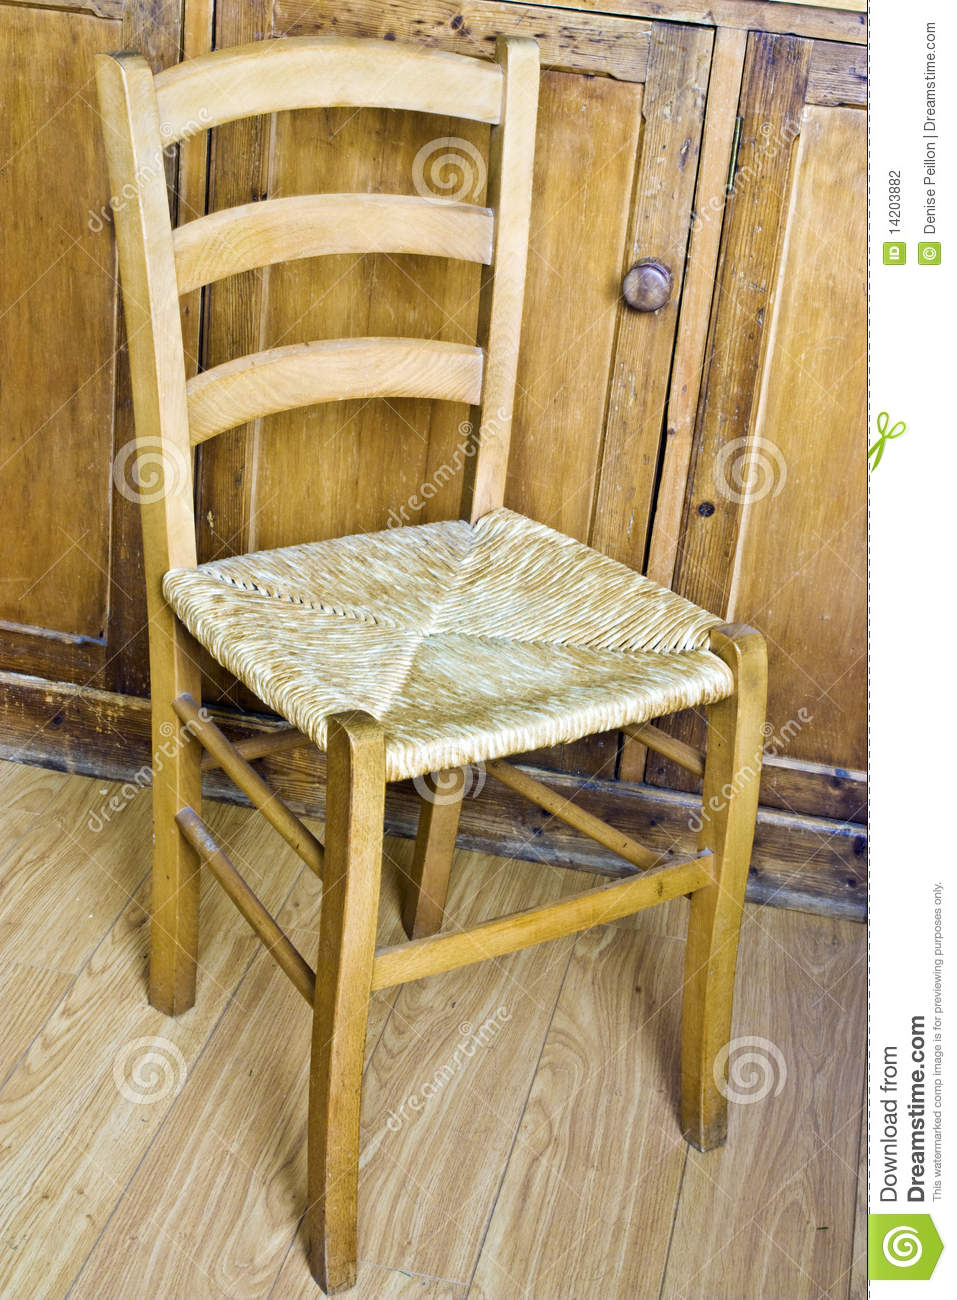 A simple wooden and wicker kitchen chair set in s rustic kitchen & Wood and wicker chair stock photo. Image of wicker wood - 14203882